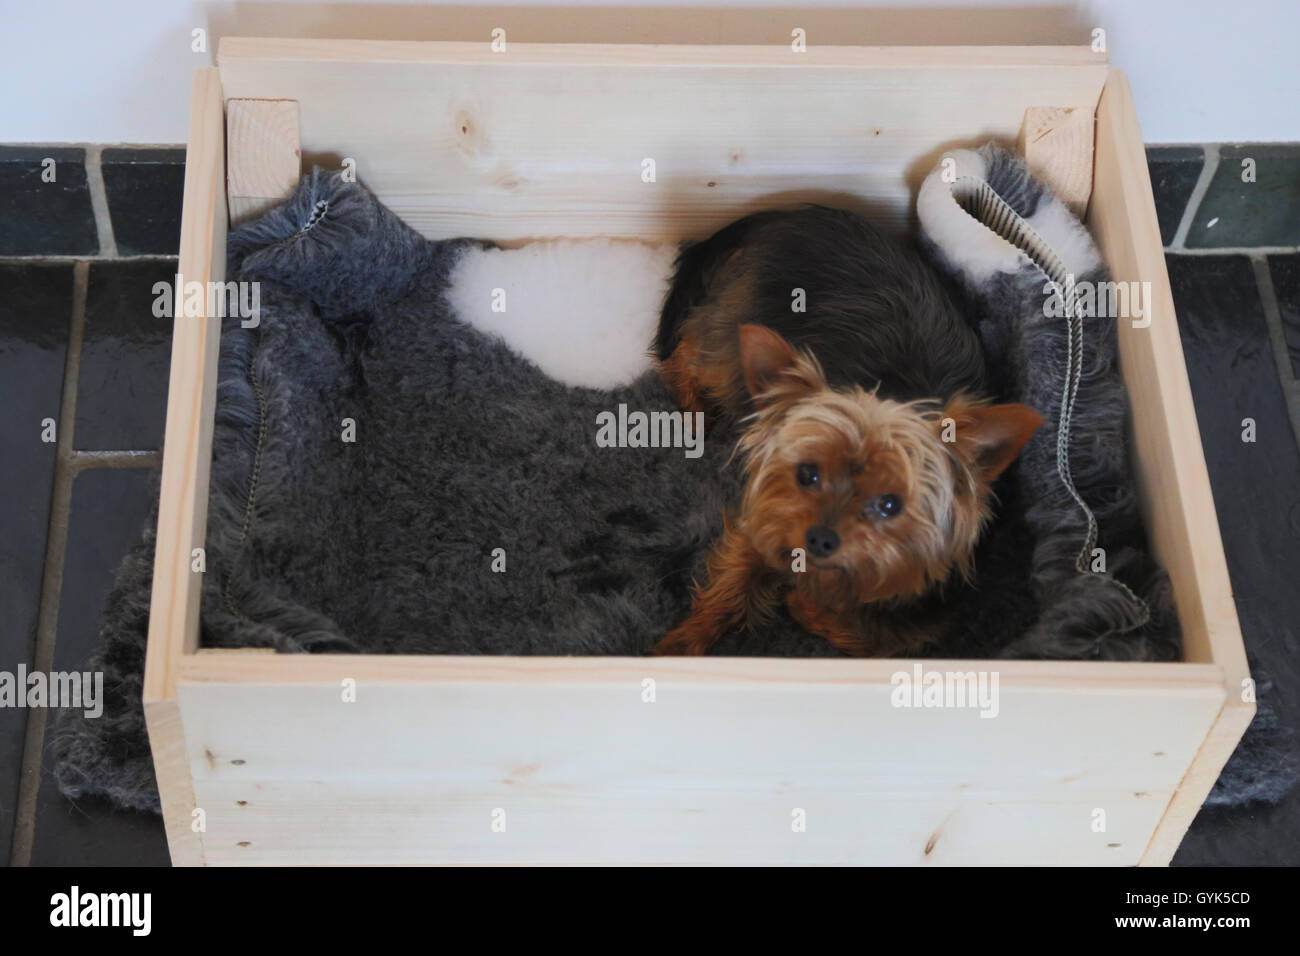 Yorkshire Terrier In Whelping Box Stock Photo 120279277 Alamy